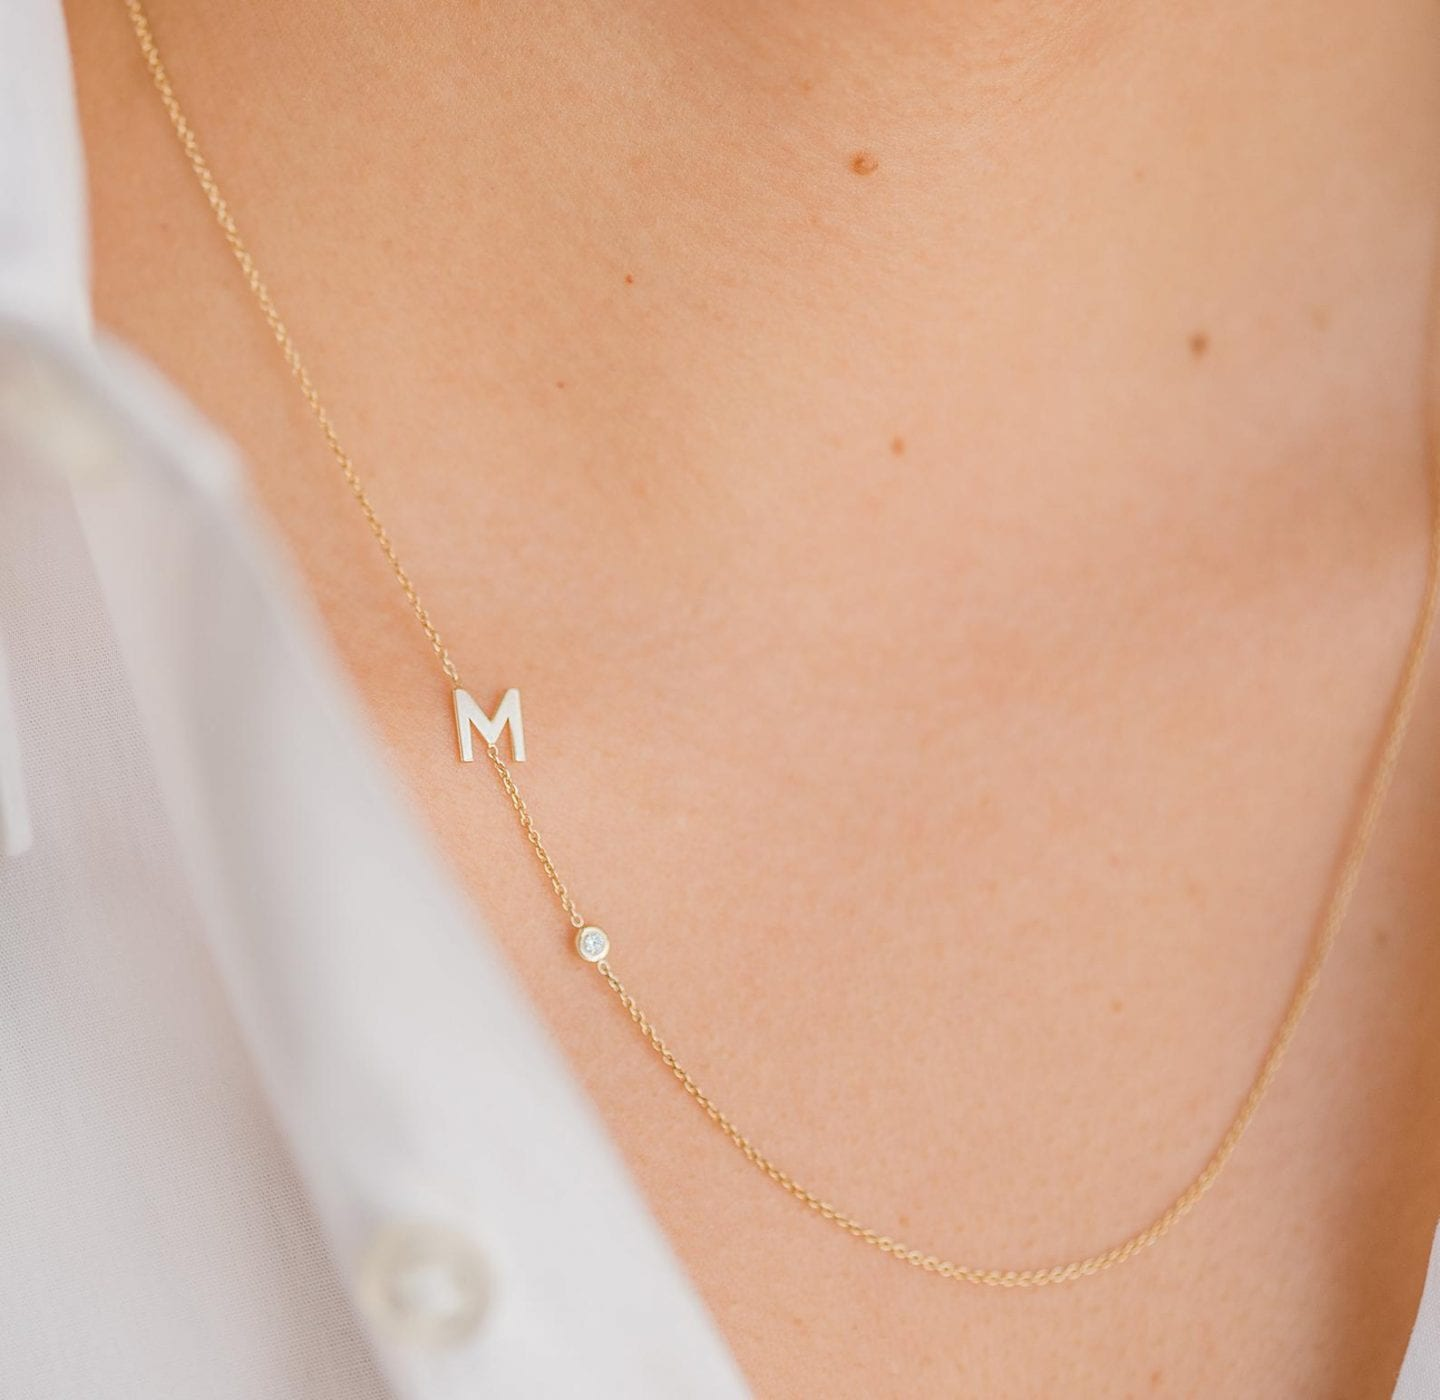 Initial Jewelry by popular San Francisco fashion blog, Just Add Glam: image of a 14k gold letter necklace with small diamond.